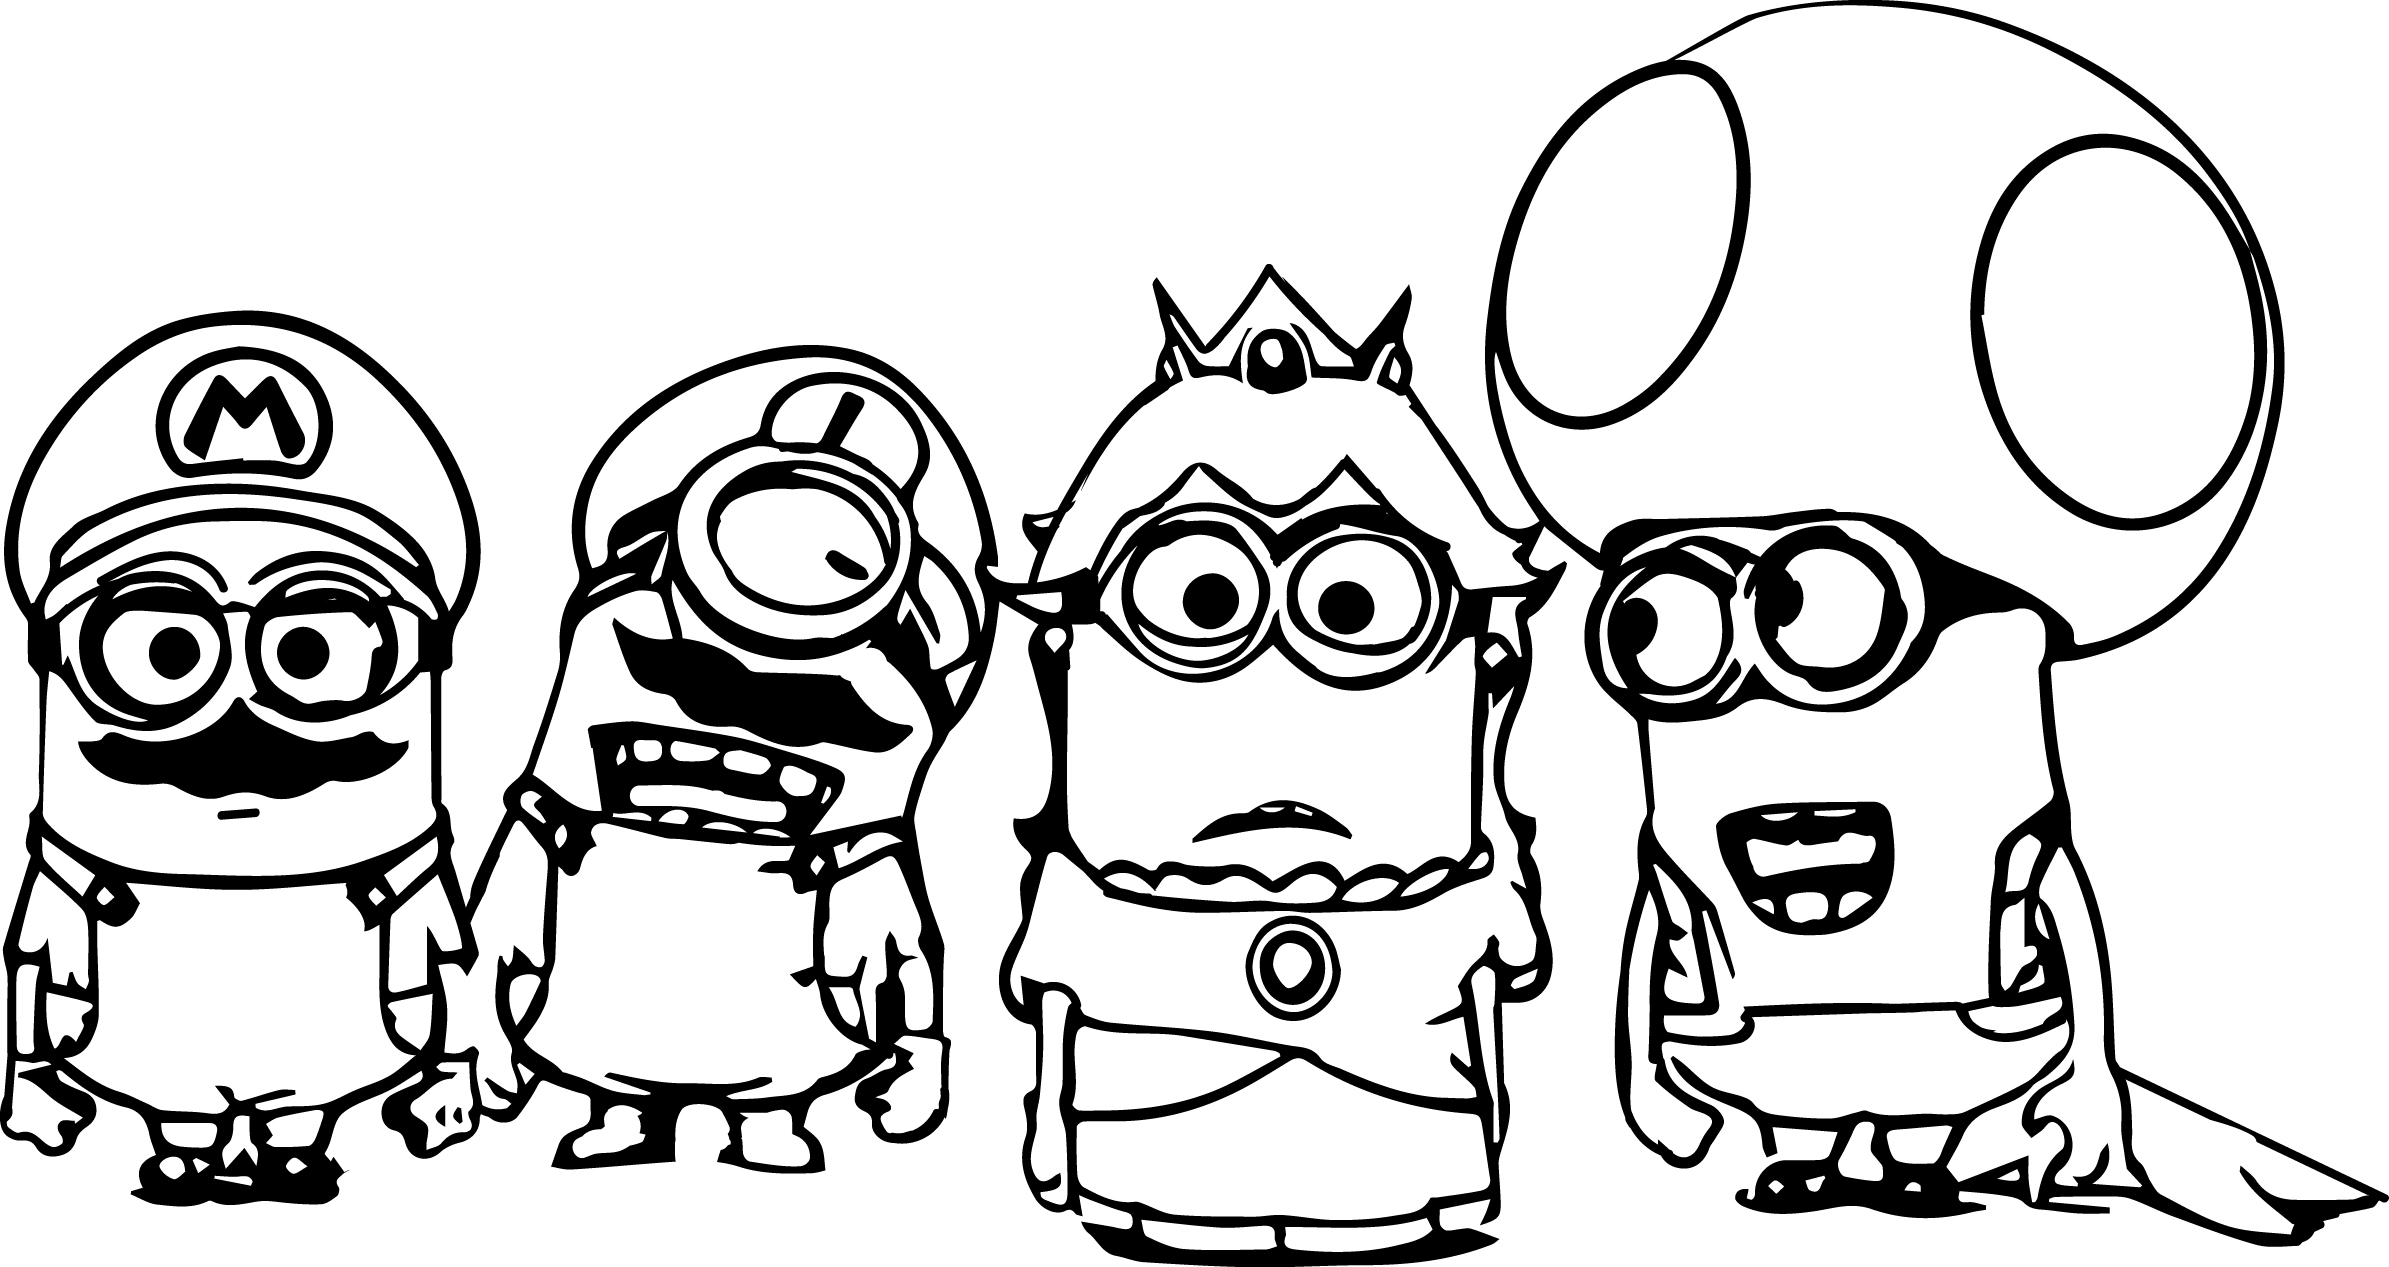 printable minion pictures to print minion coloring pages from despicable me for free minion pictures printable